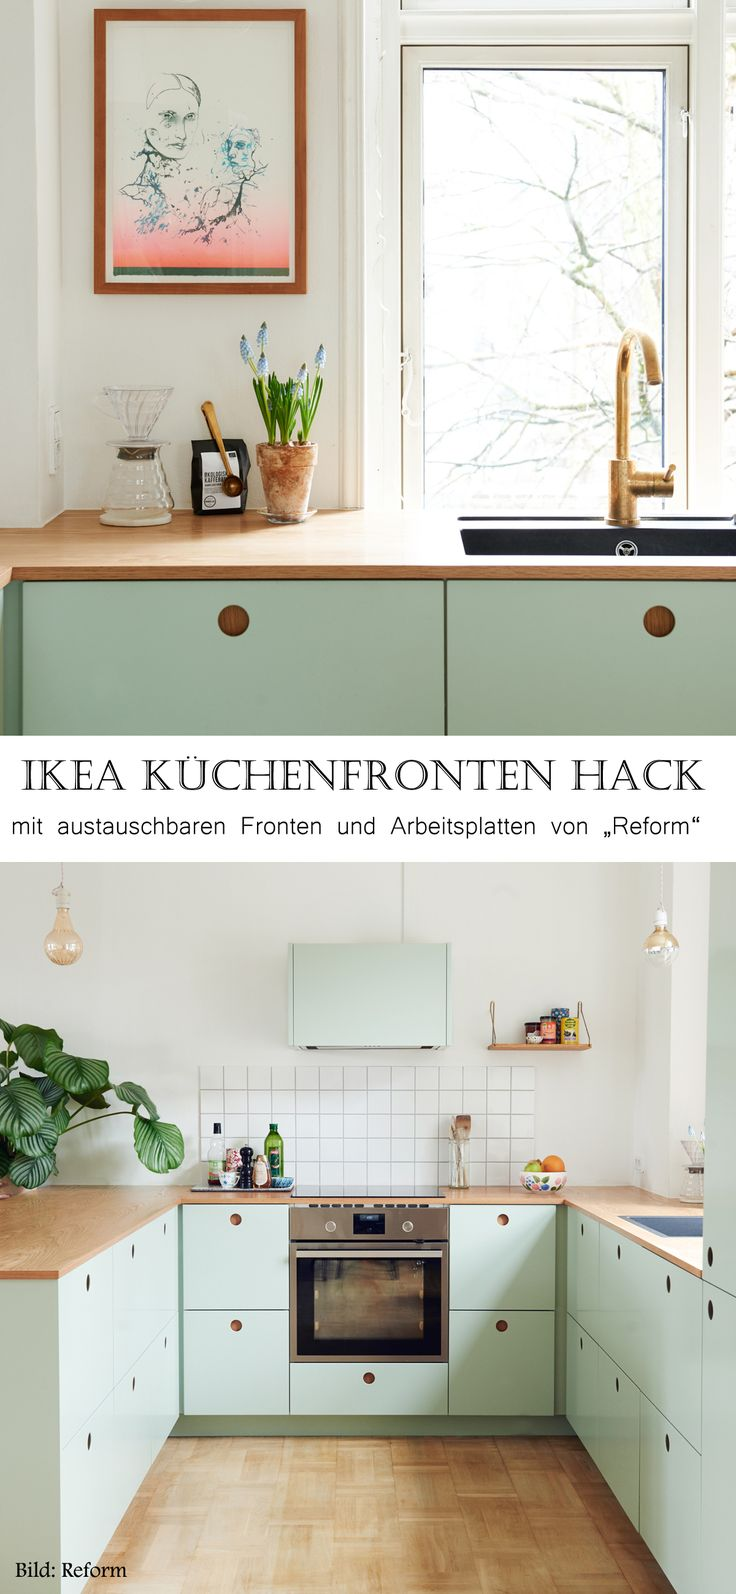 Awesome Ikea K chenfronten pimpen